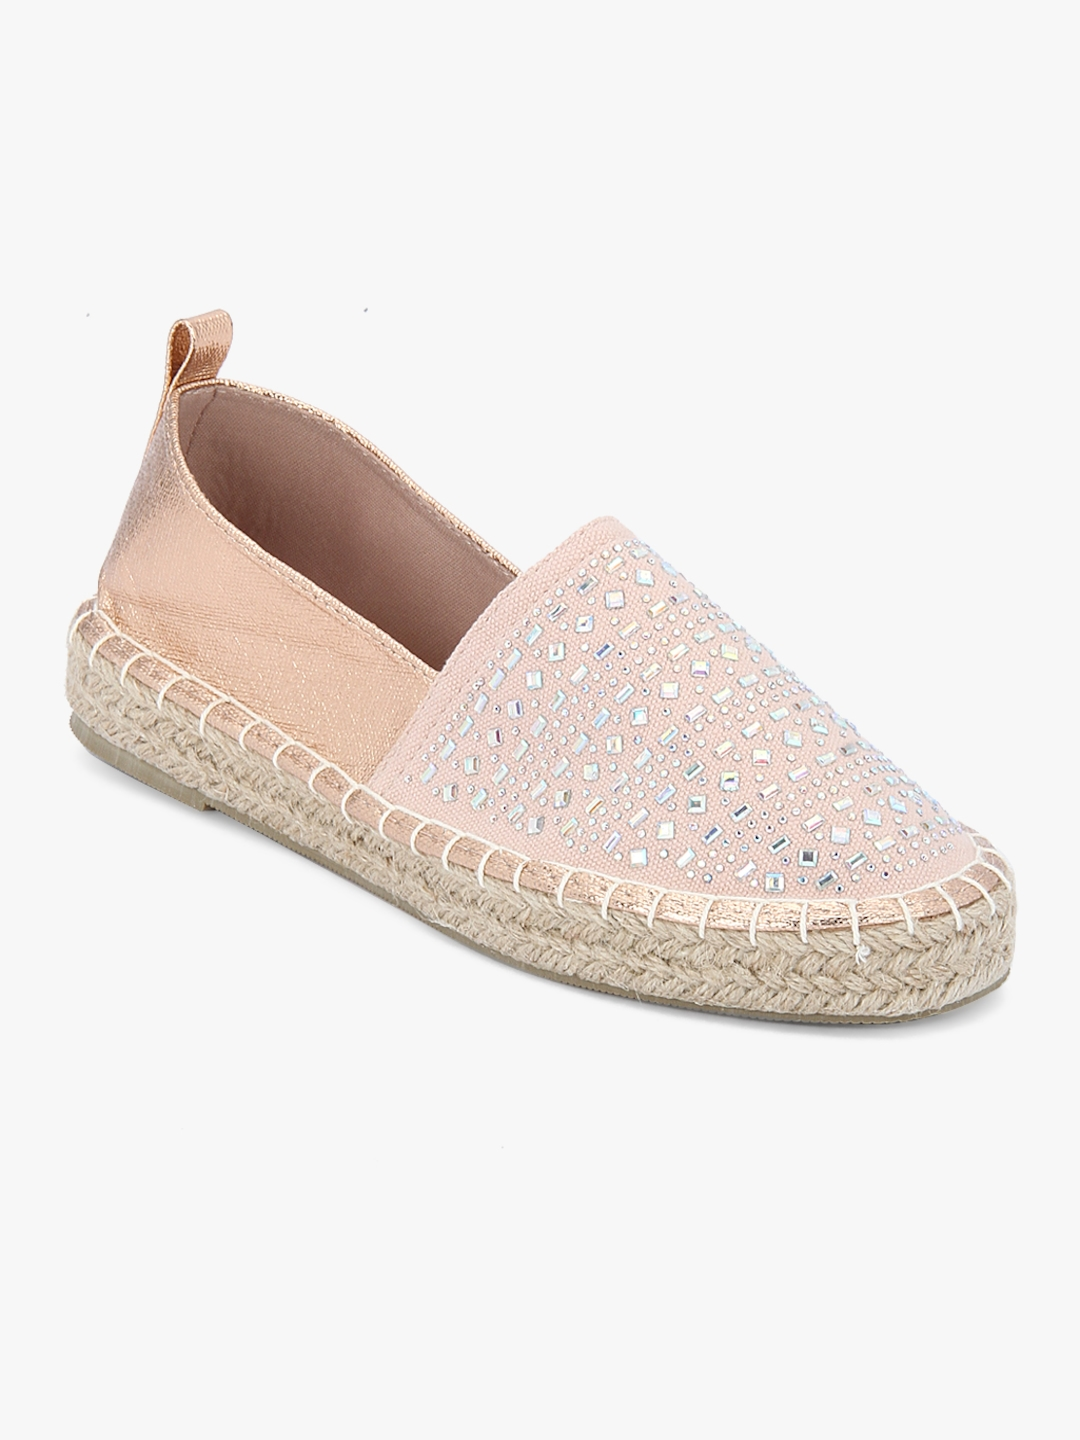 f6843aef2 Buy Pizzaz Gold Espadrilles Casual Moccasins - Casual Shoes for ...